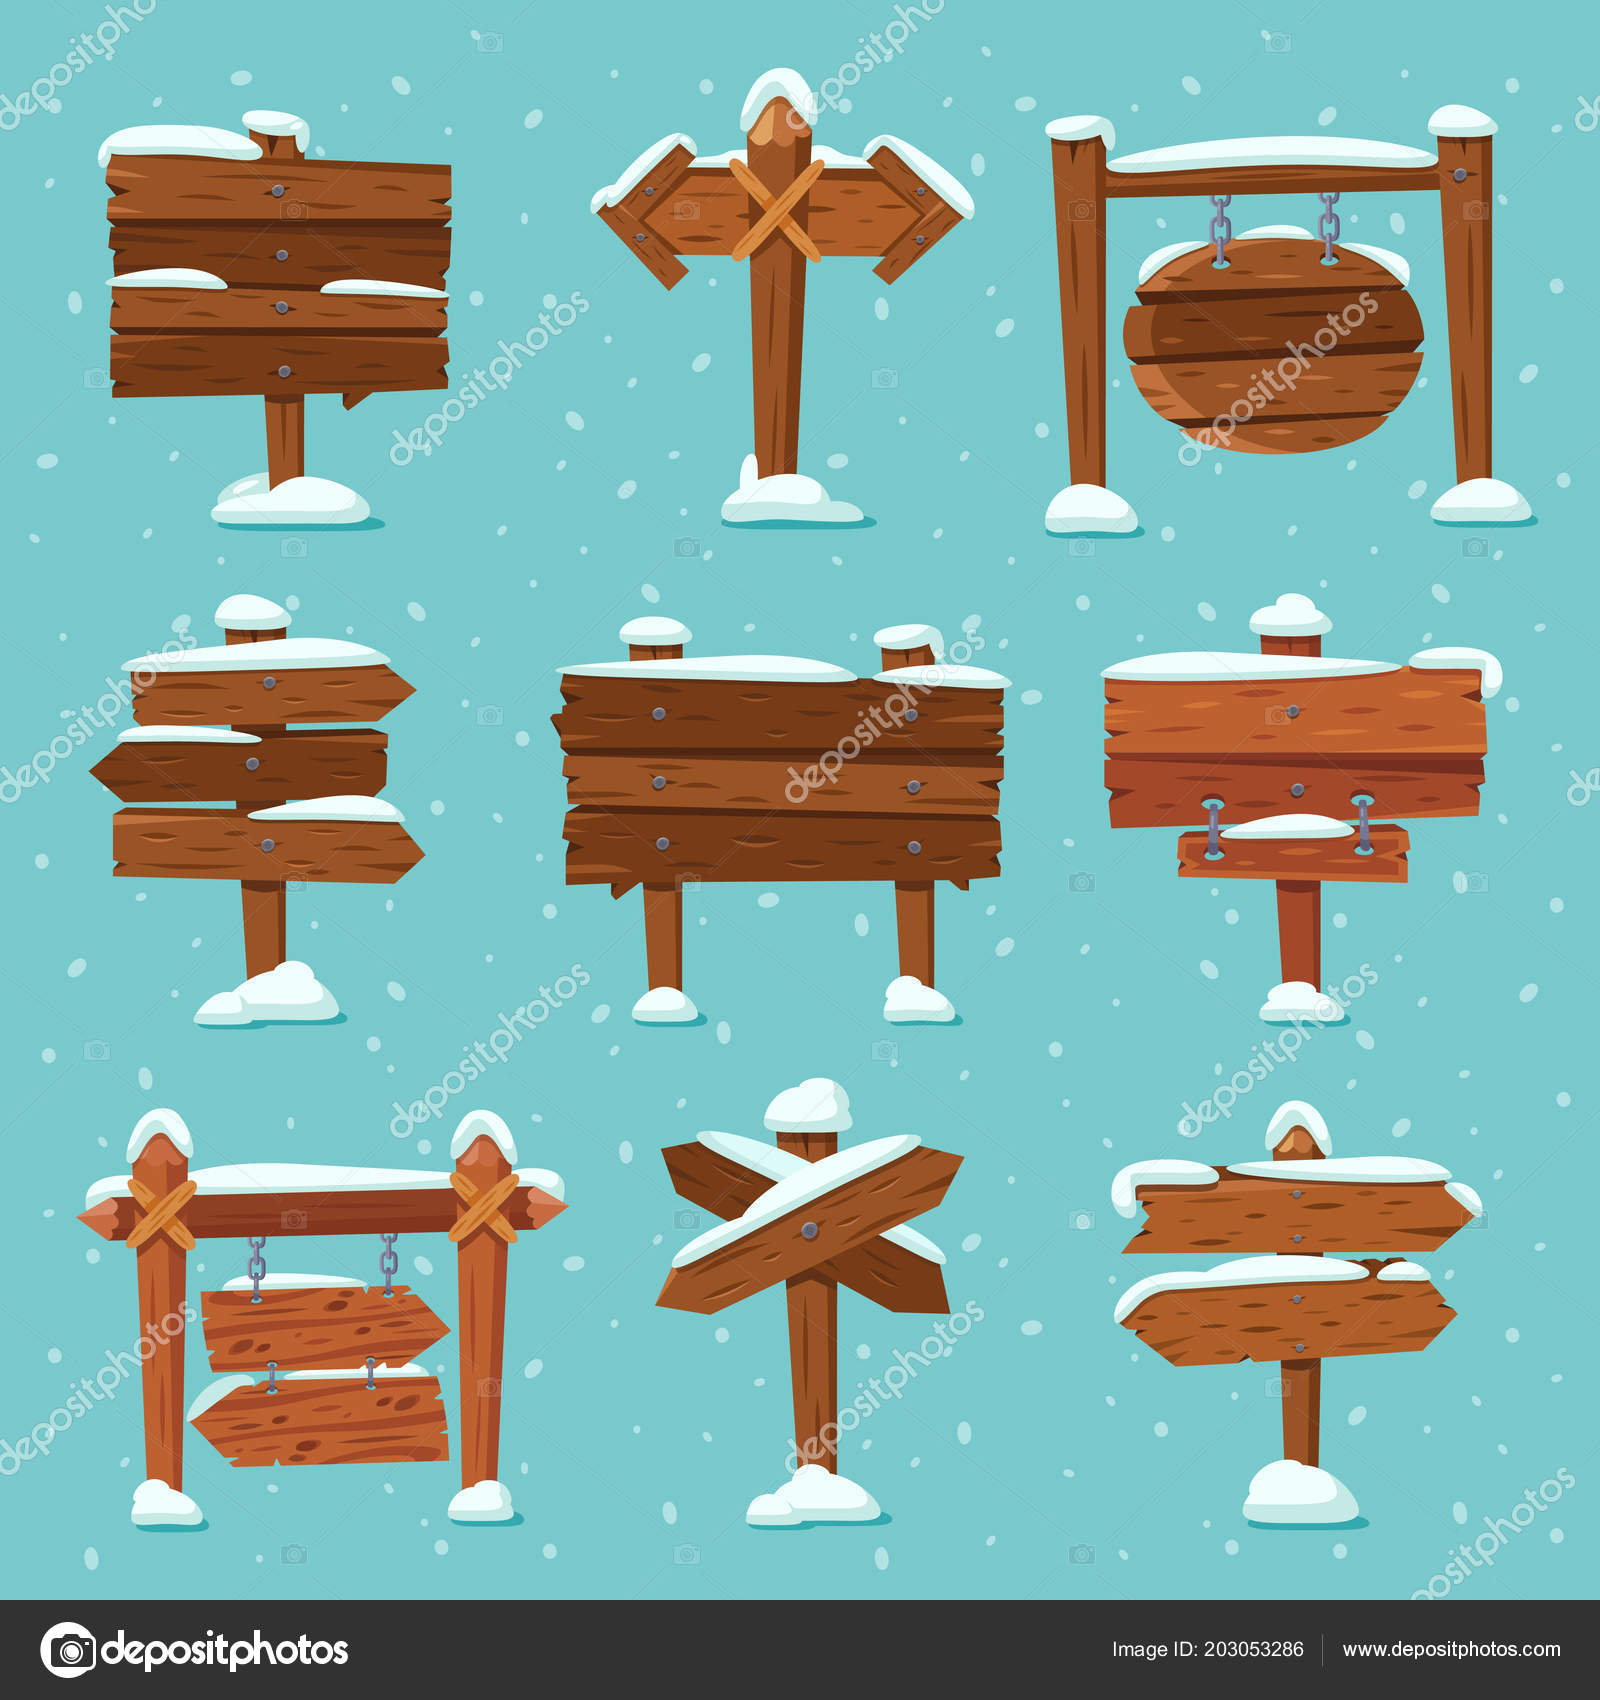 Christmas Arrow Signs.Cartoon Snowed Signpost Christmas Wooden Signpost With